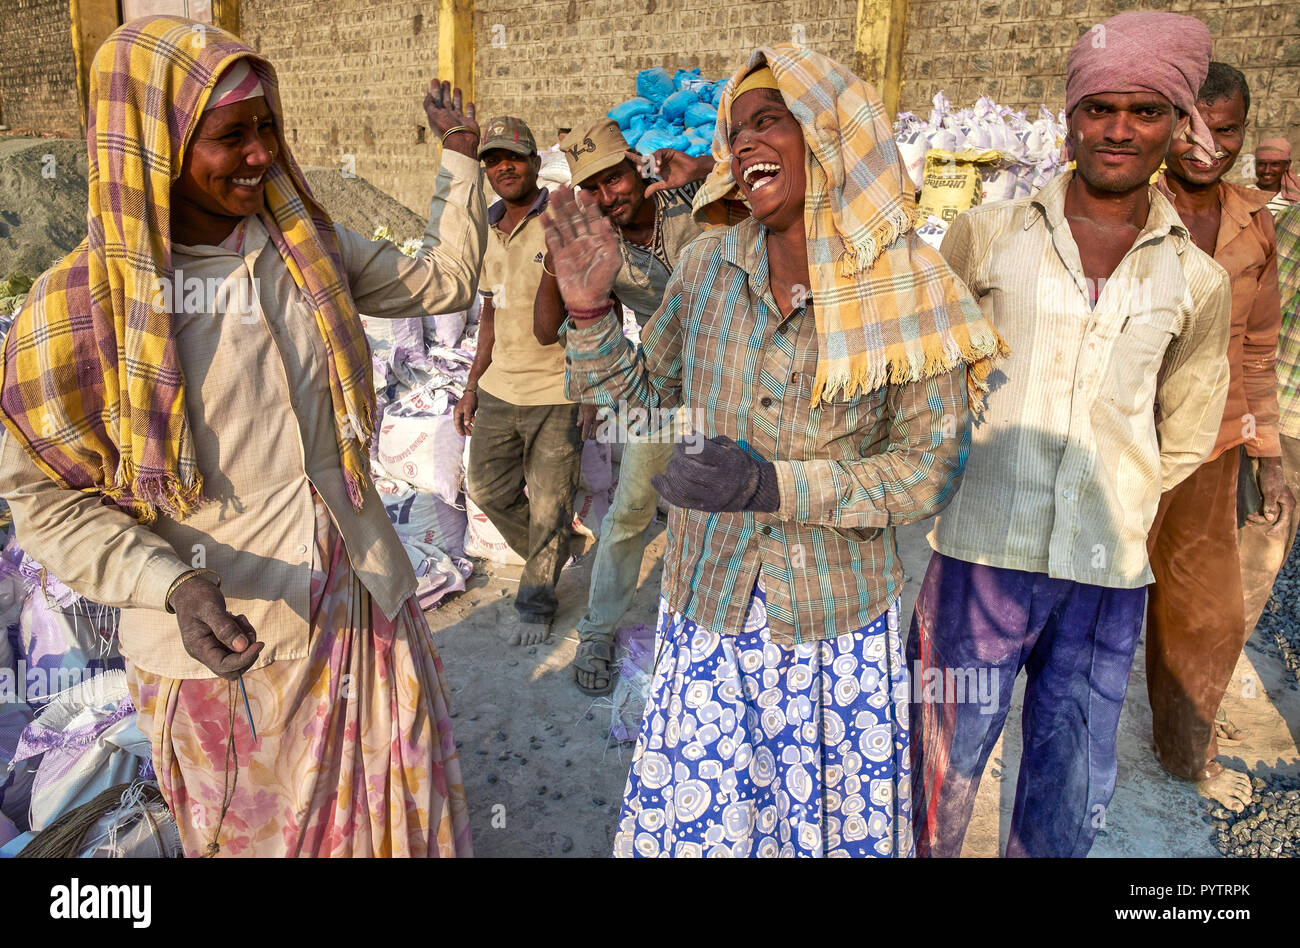 A group of migrant workers in the Old Harbour, Mangalore, Karnataka, India, hailing from Northern Karnataka, Ksharing jokes and a moment of good cheer - Stock Image